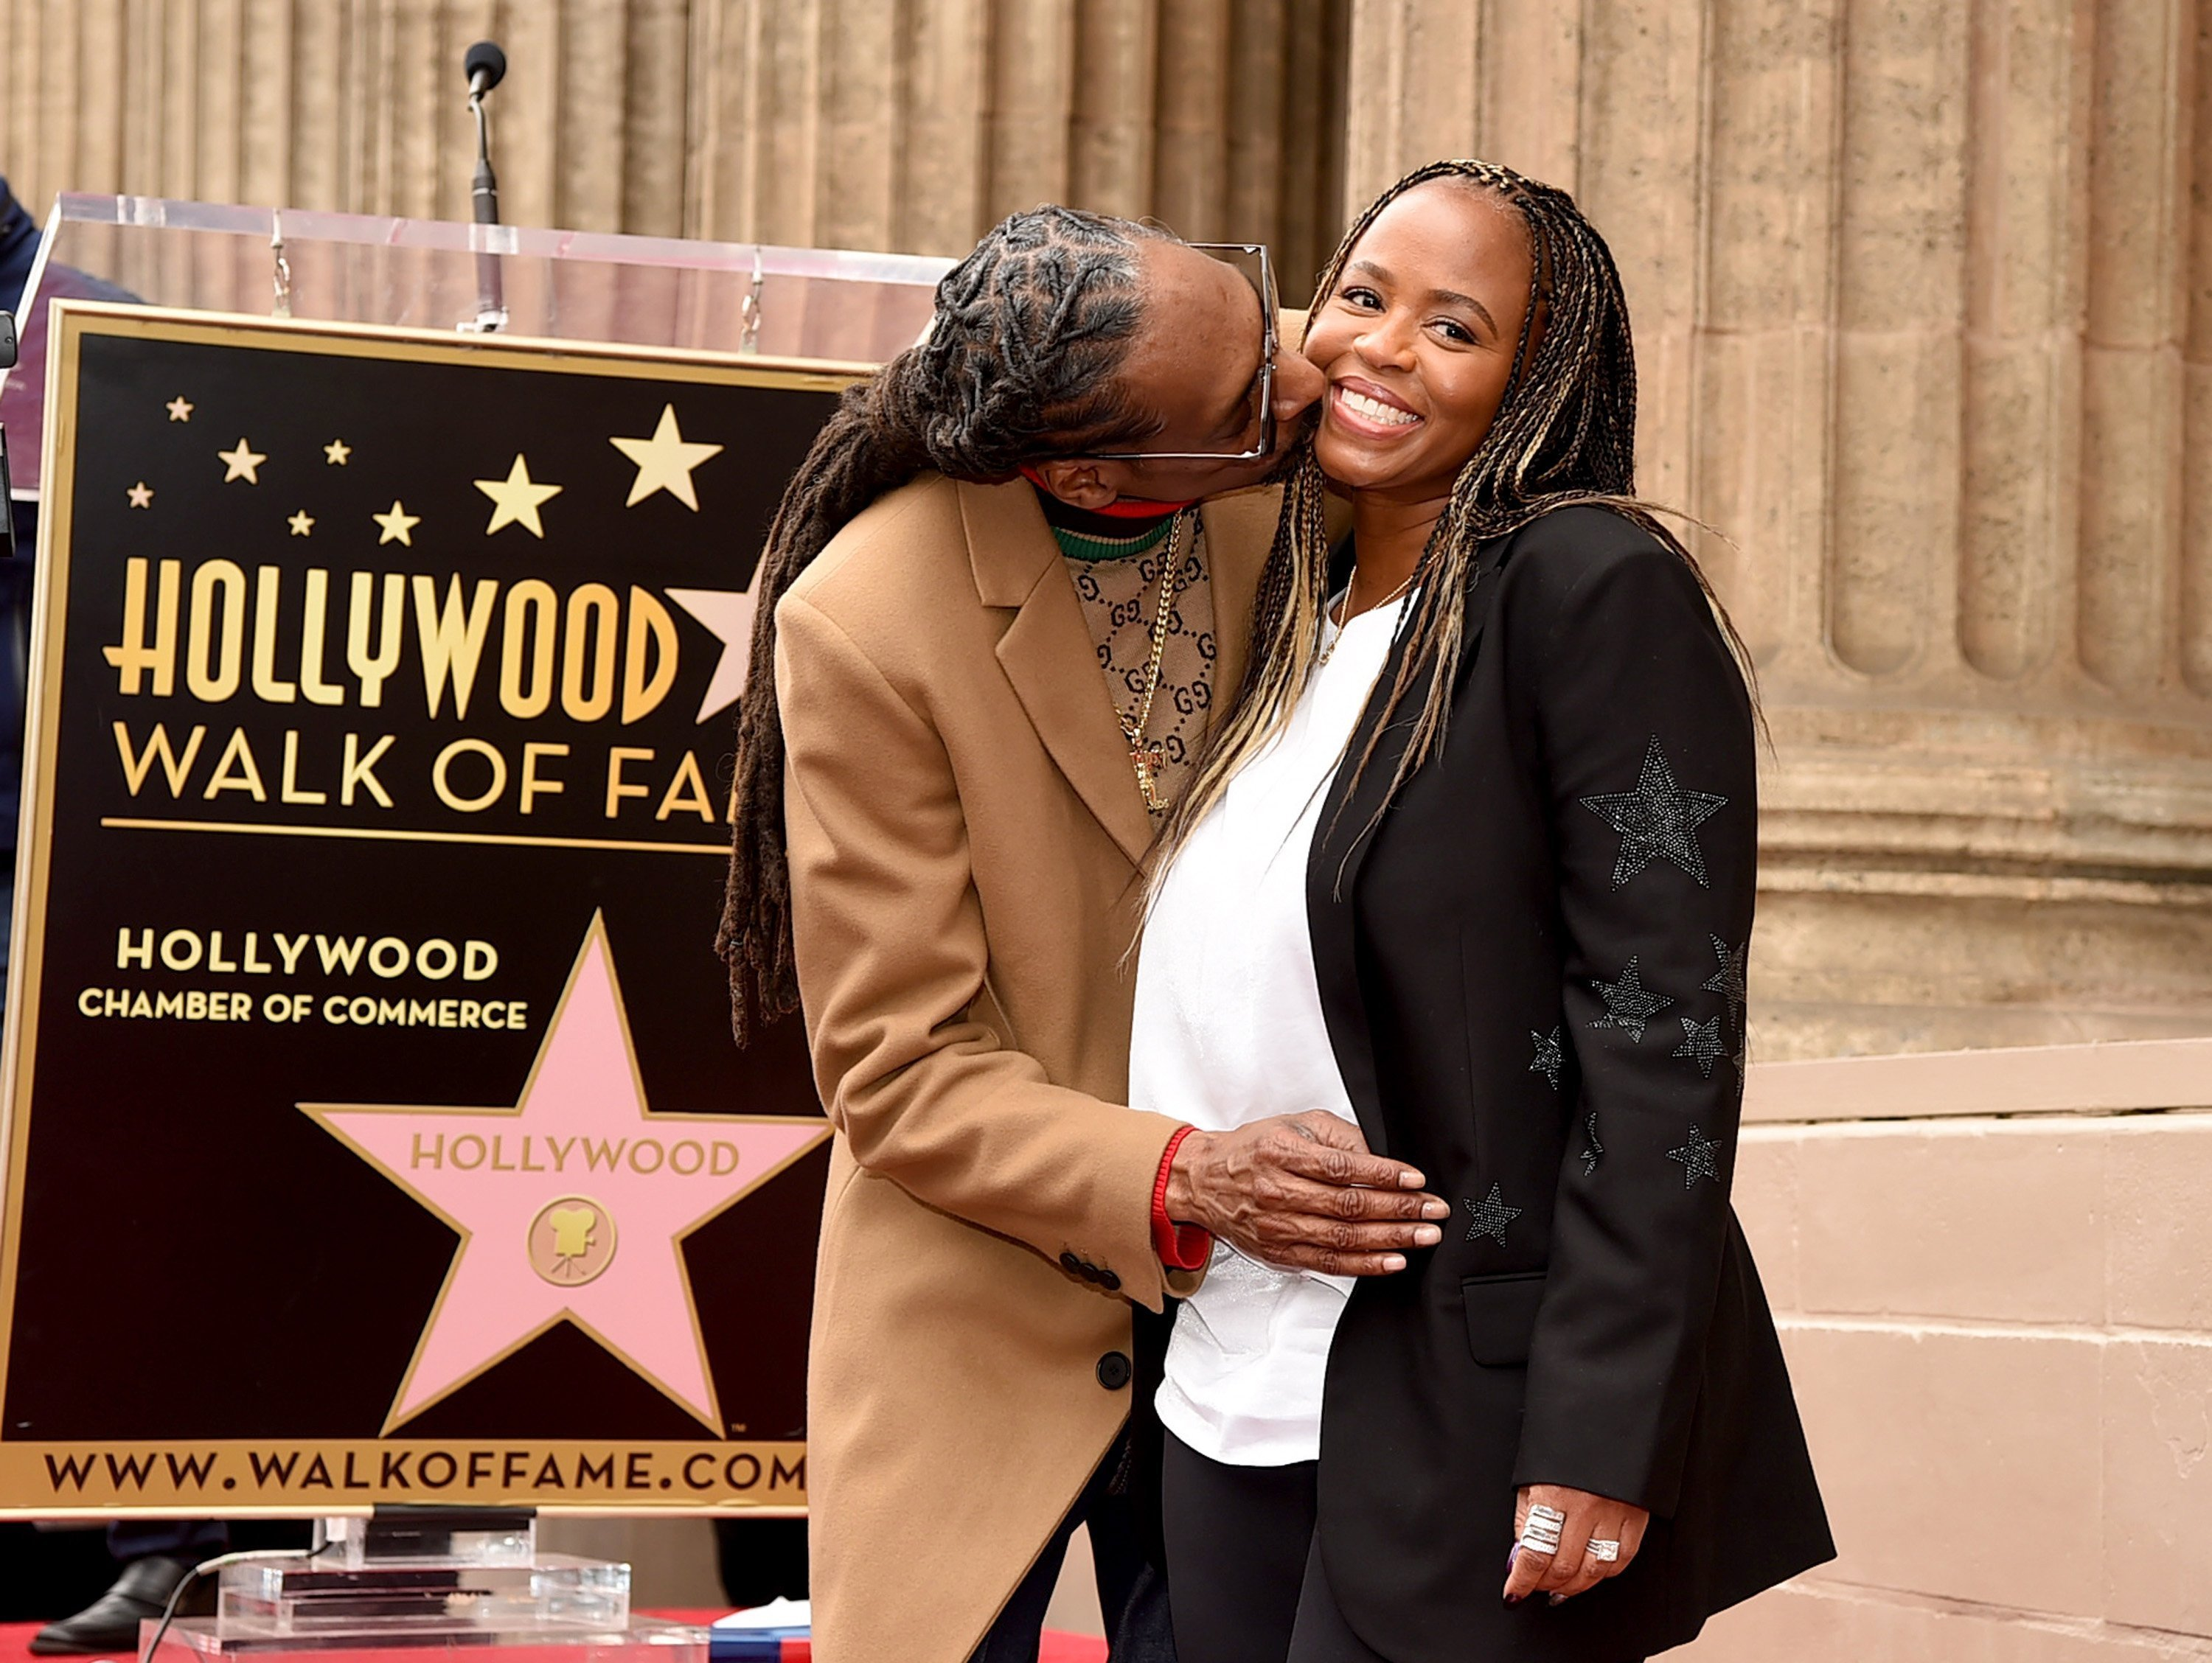 Snoop Dogg and Shante Broadus at The Hollywood Walk of Fame on Hollywood Boulevard on November 19, 2018. | Source: Getty Images